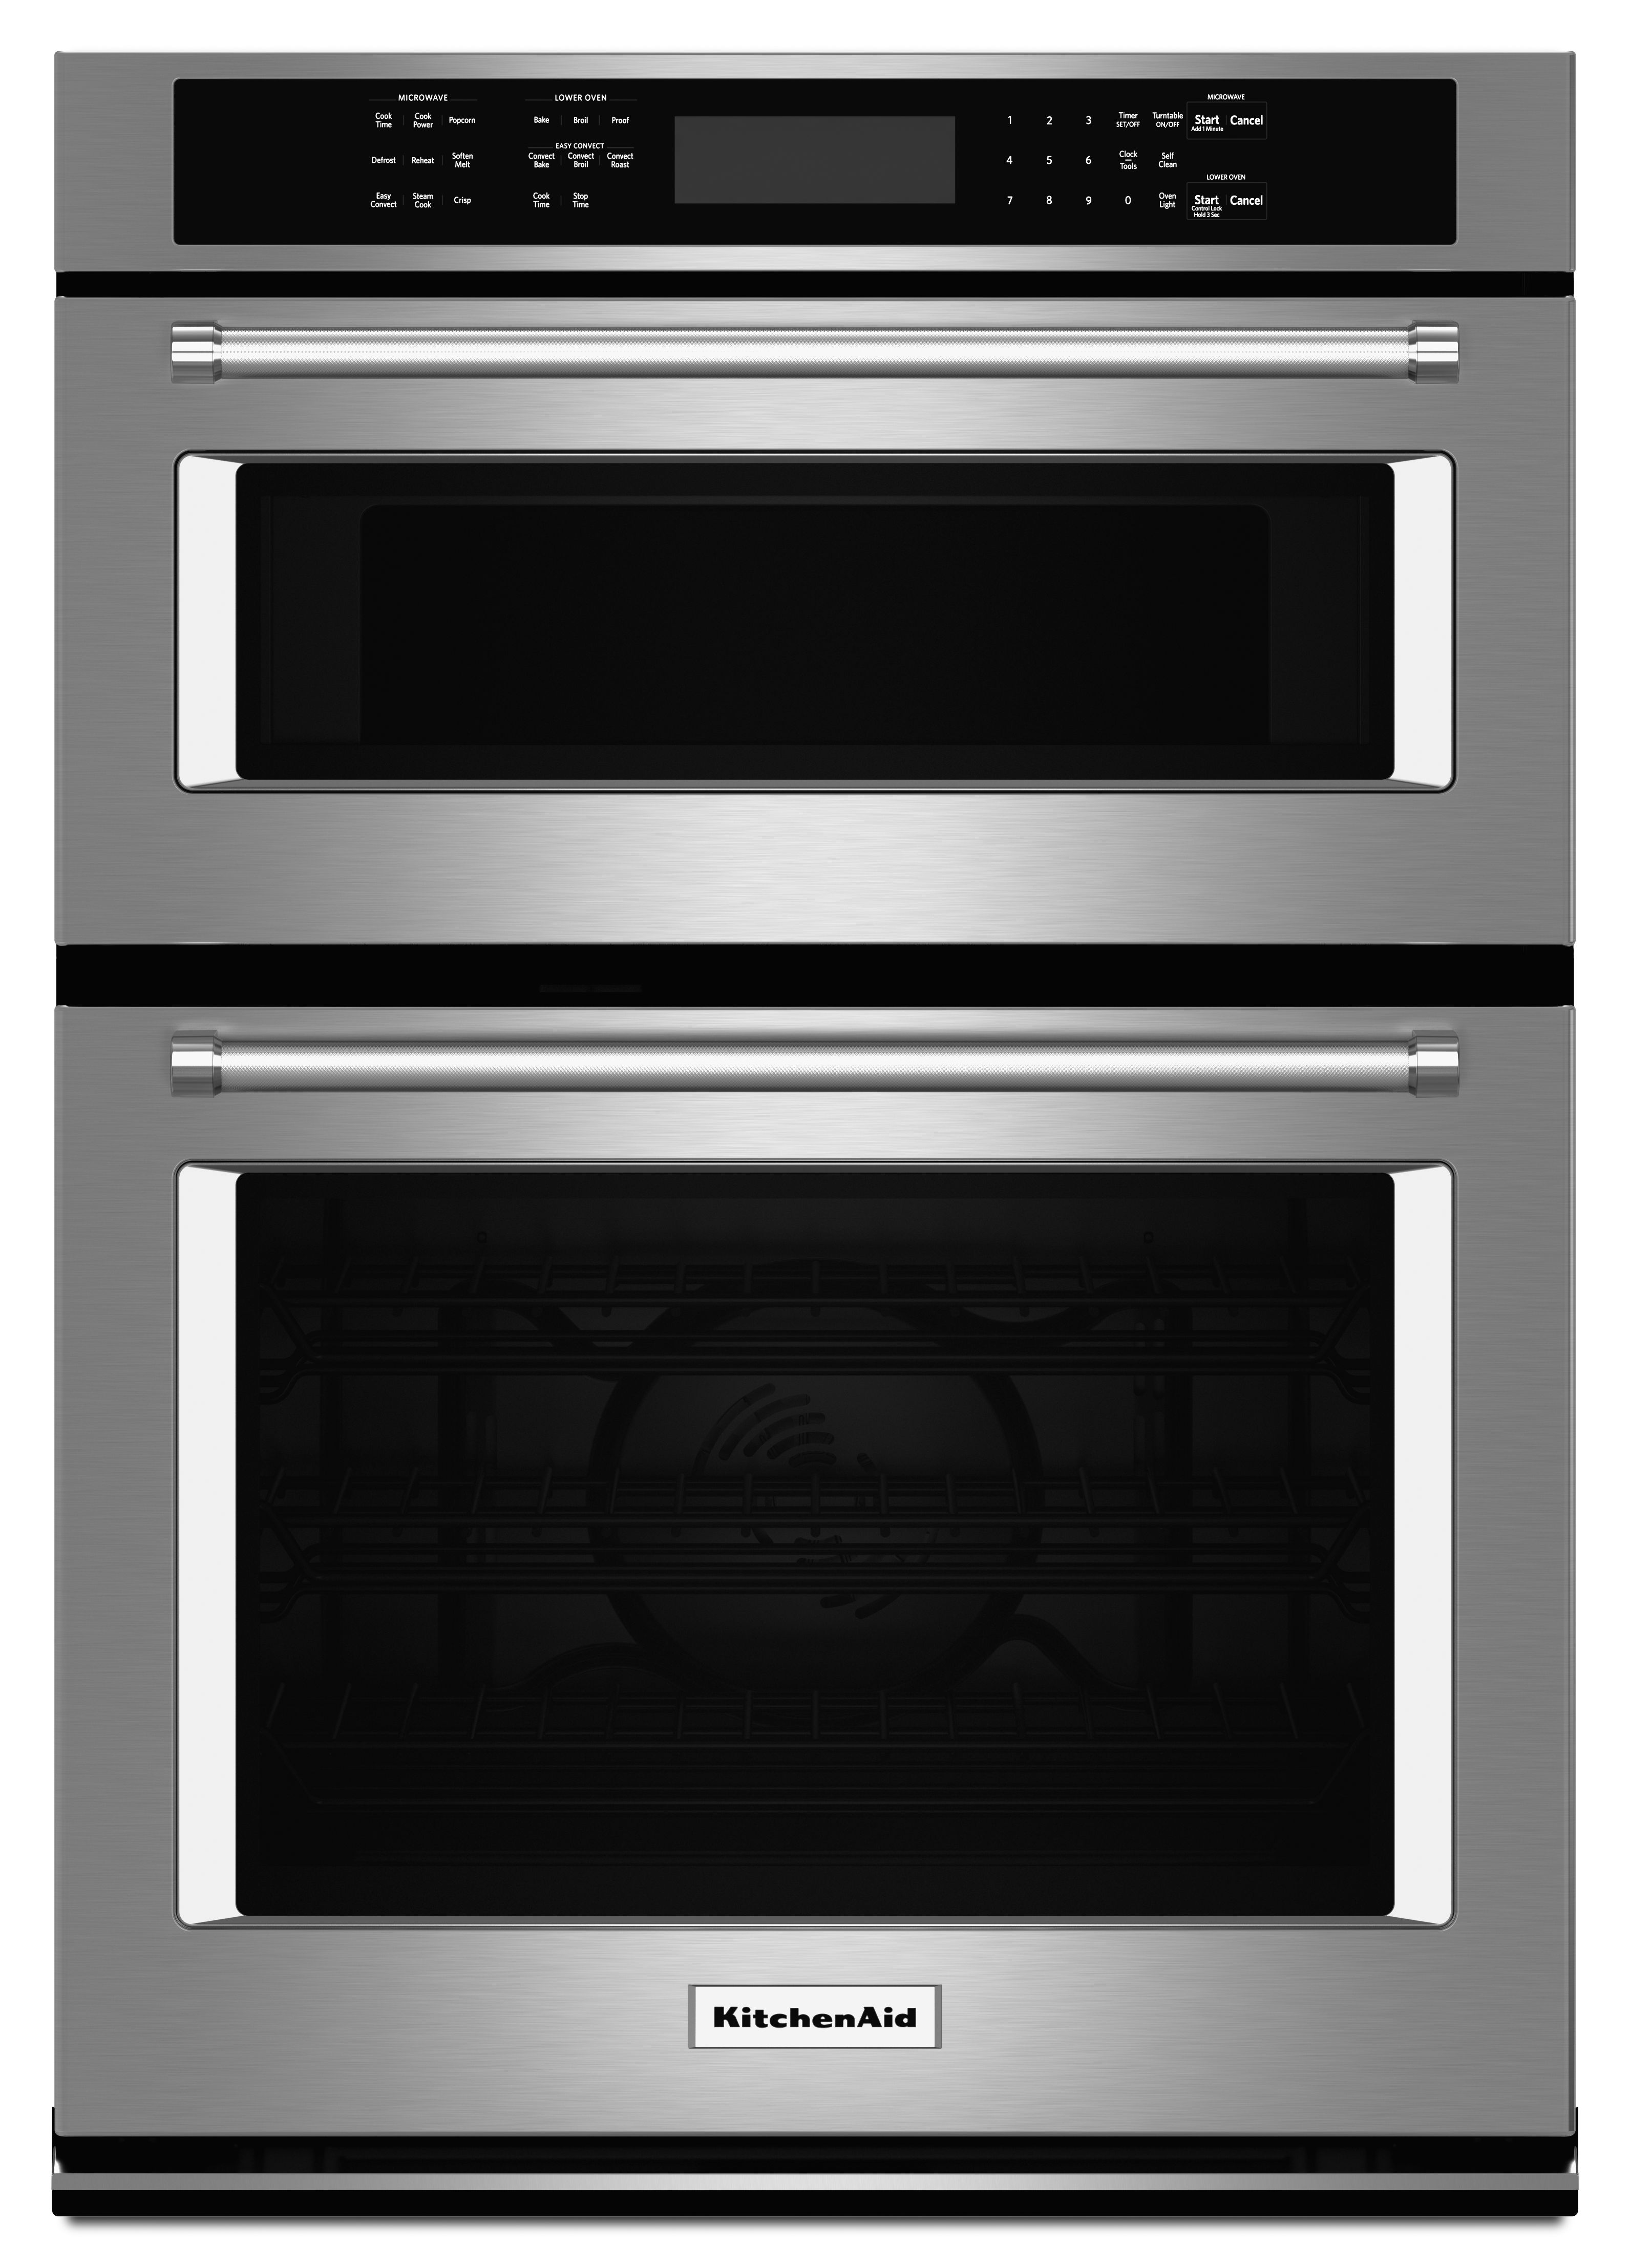 kitchenaid 27 electric oven microwave combo built in stainless rh jjglossappliance com